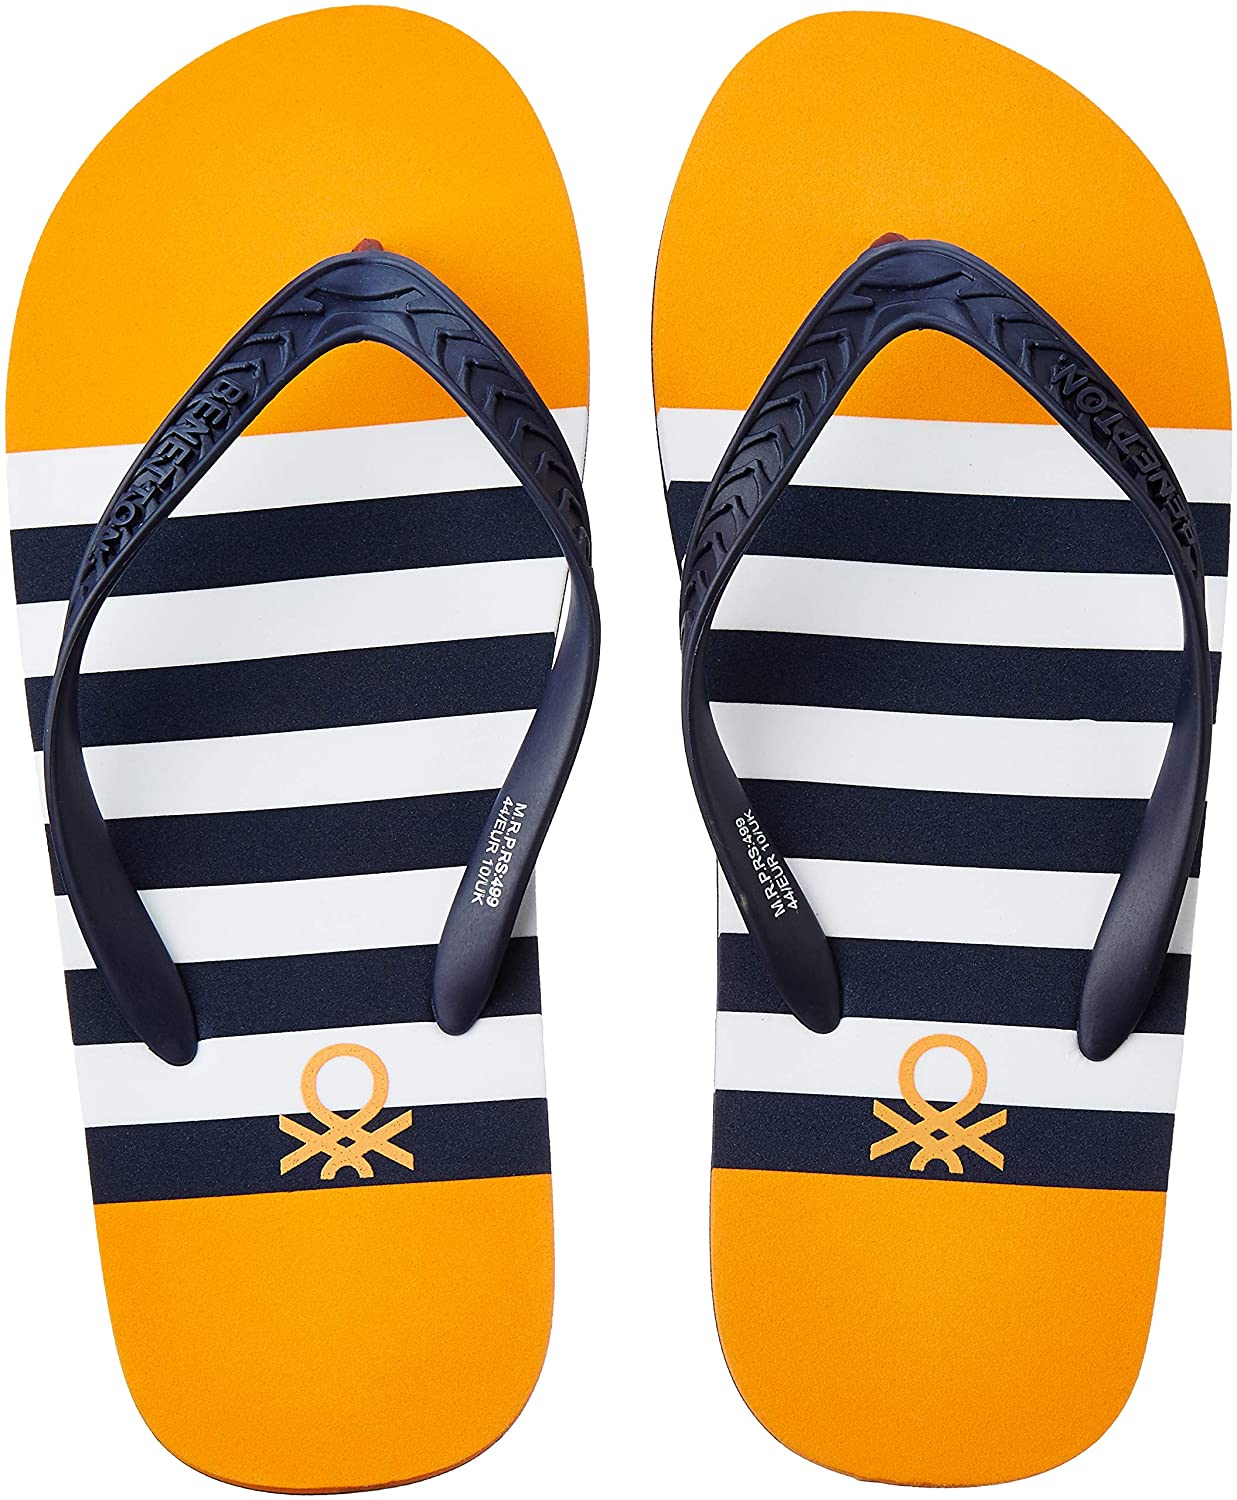 Get Upto 80% Off on UCB's Flip Flops Starting at just Rs.217